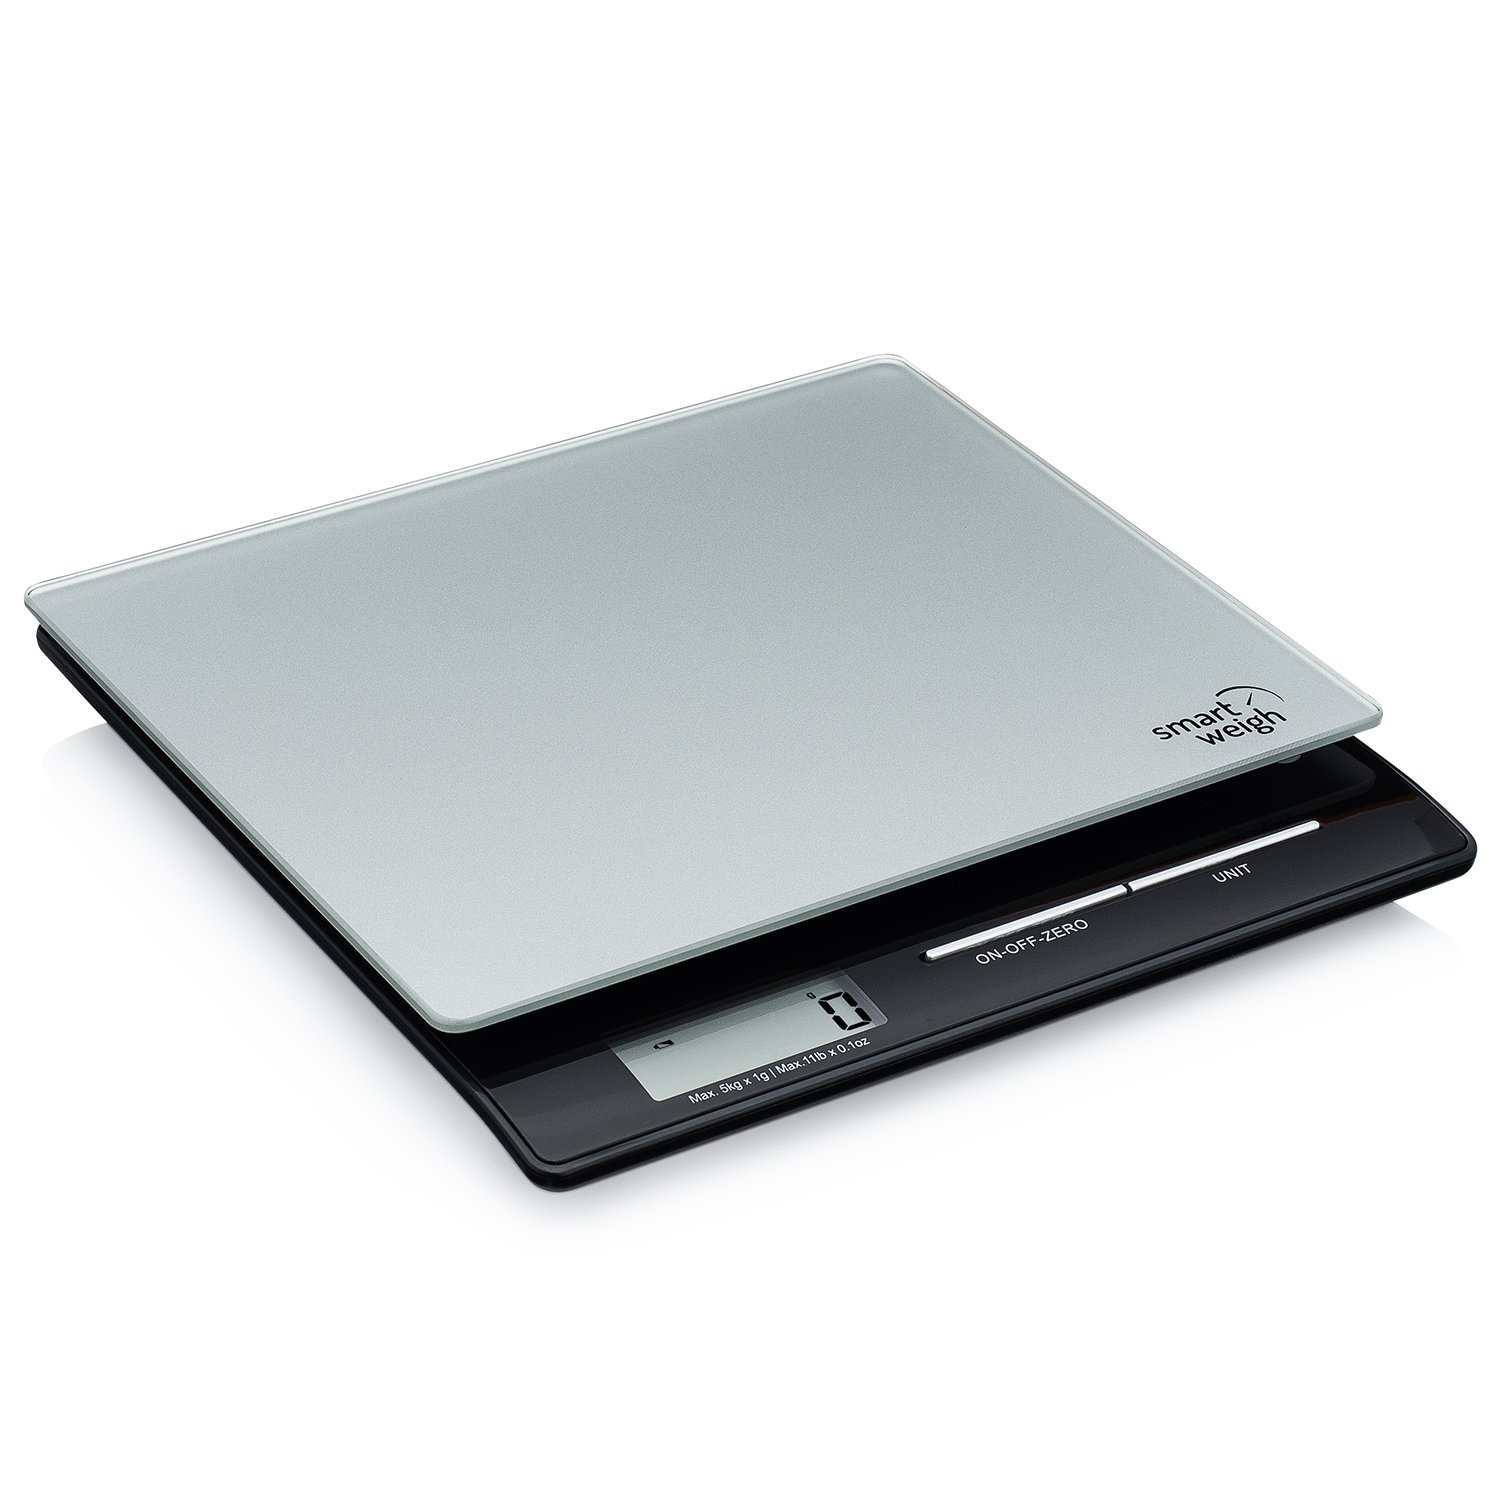 Smart Weigh Professional USPS Postal Scale